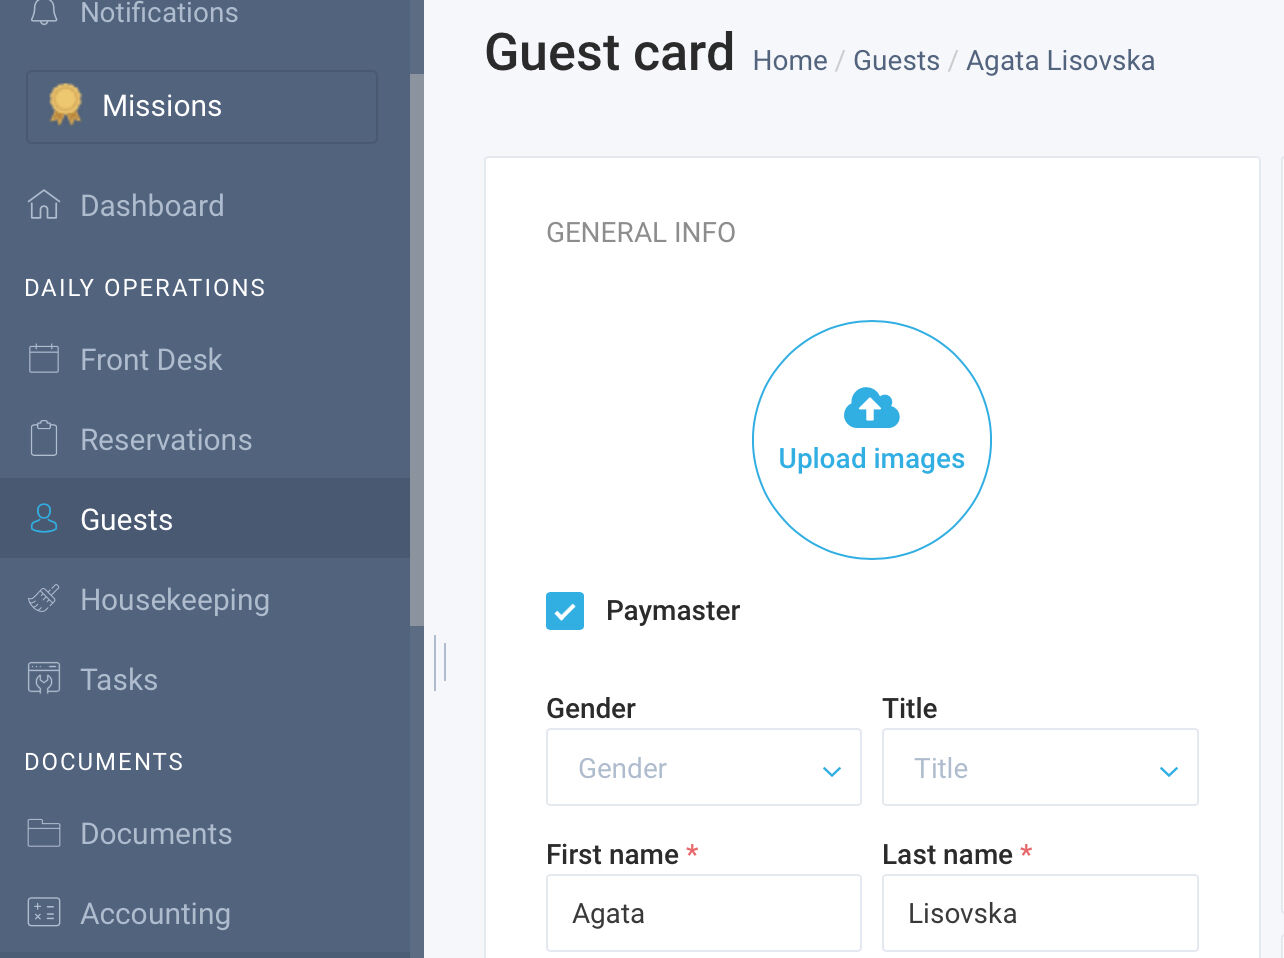 Added a new feature for managing billing items which makes checking out reservations more flexible